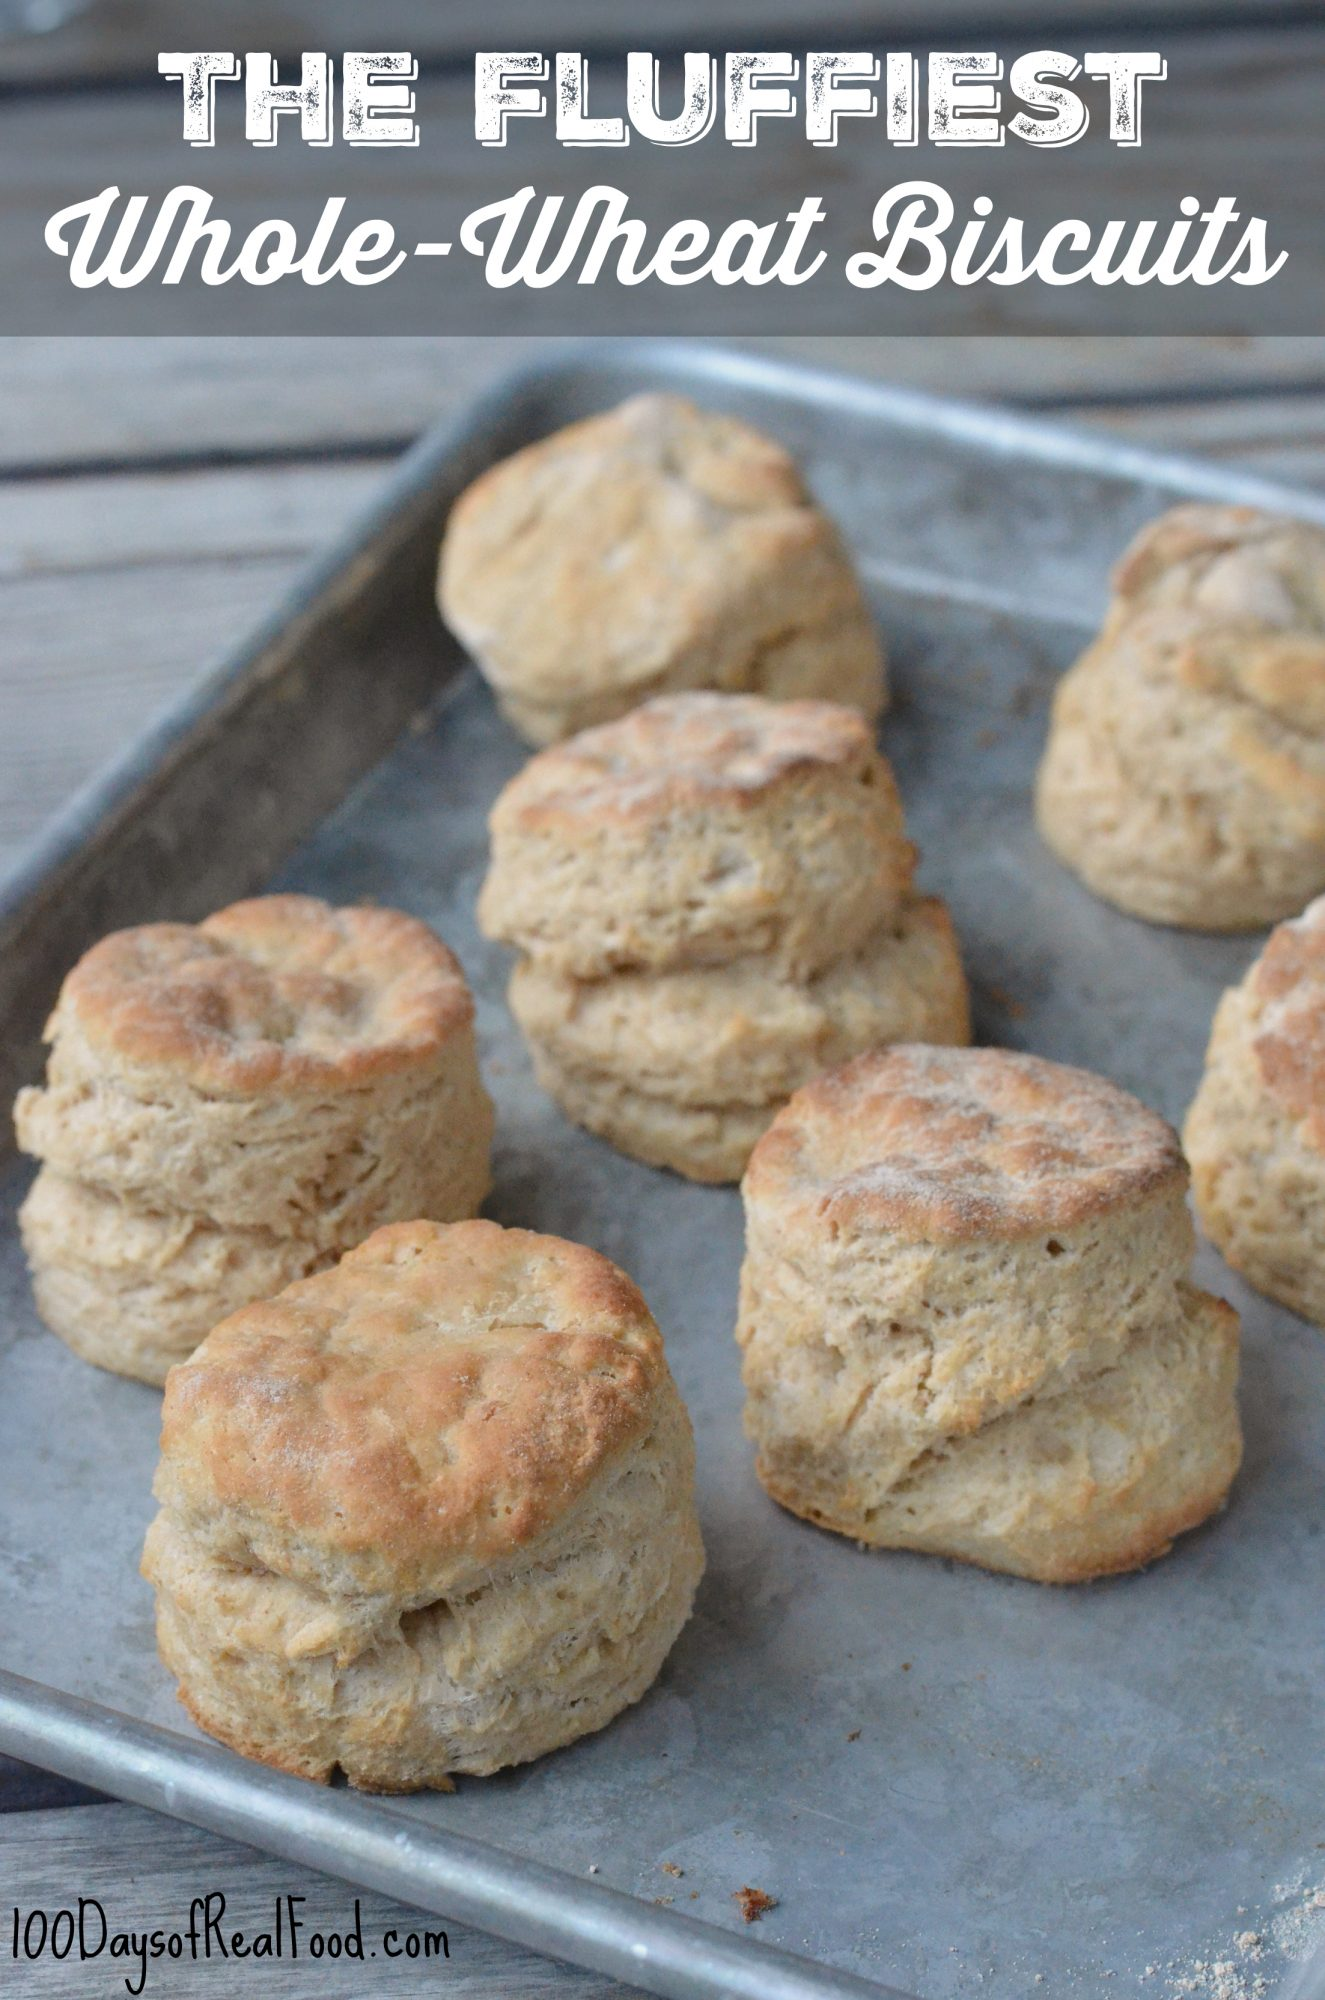 The Way to Make the Fluffiest Whole-Wheat Biscuits